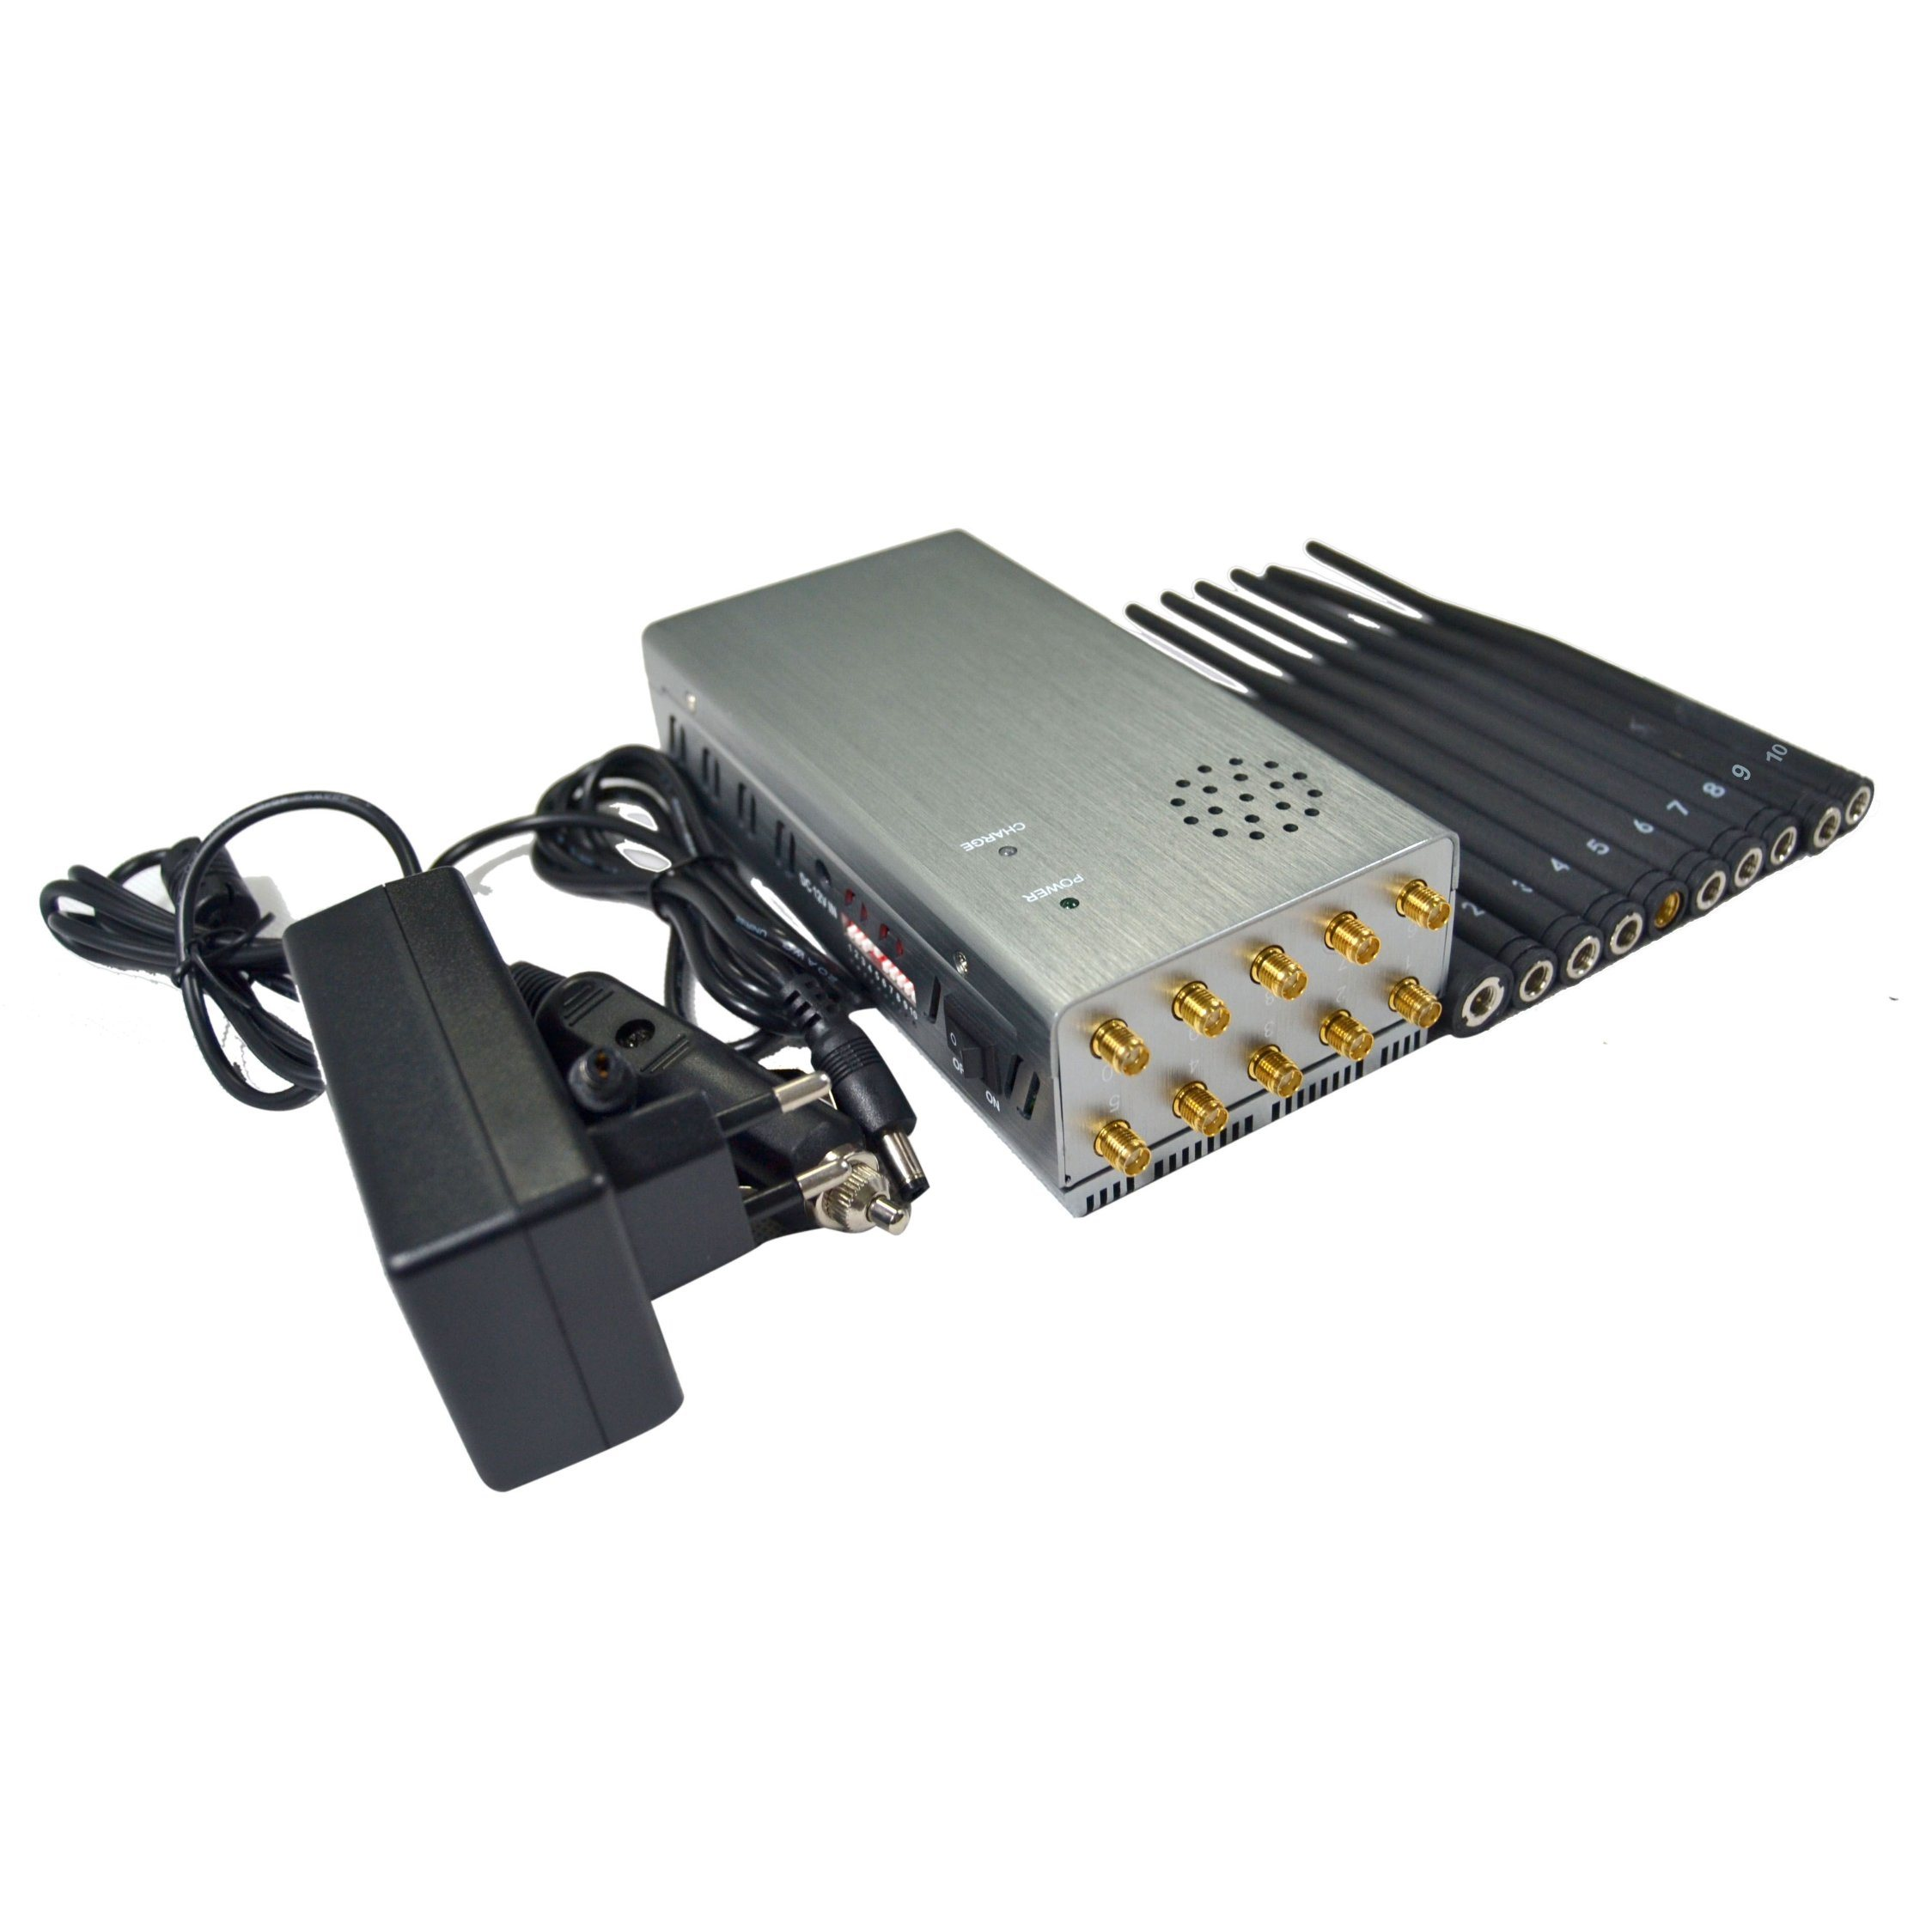 diy cellular jammer challenge - China The King of Portable Jammers with 8000mA and 10 Antennas Including 2g 3G 4G 5g GPS 433MHz315MHz868MHz WiFi - China 8000mA Battery Jammer, Large Volume Power Signal Blocker